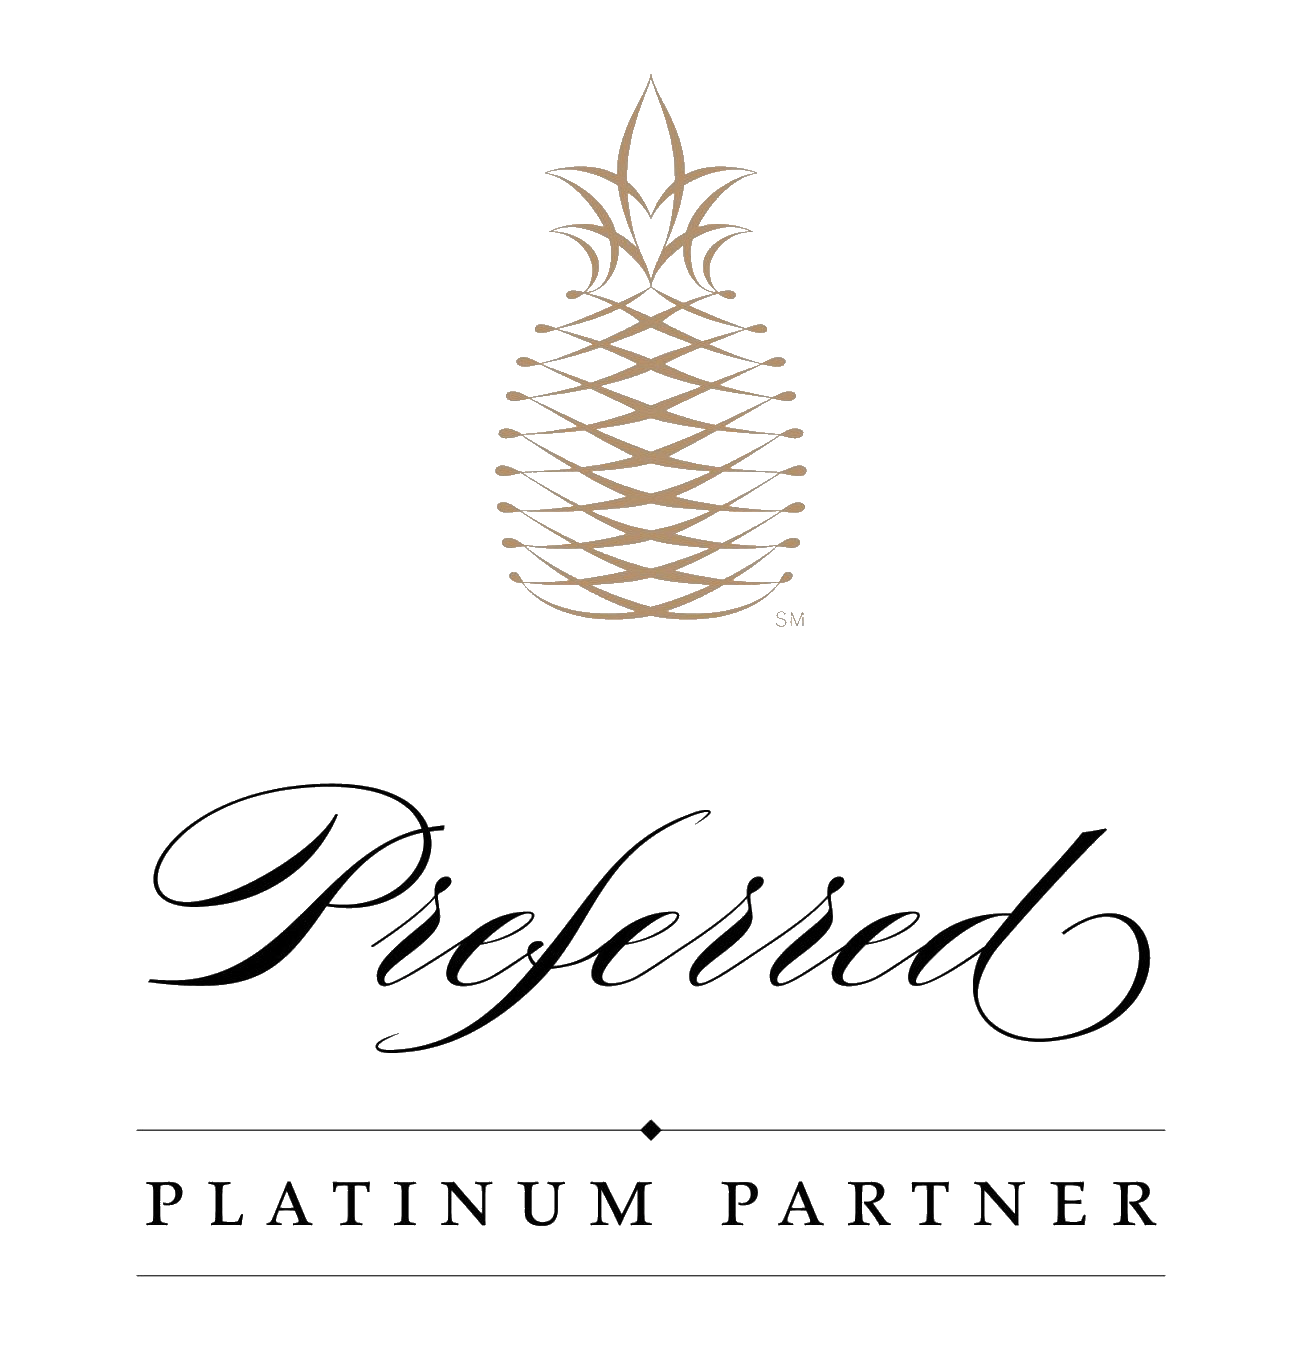 Preferred Hotels & Resorts Platinum Partner